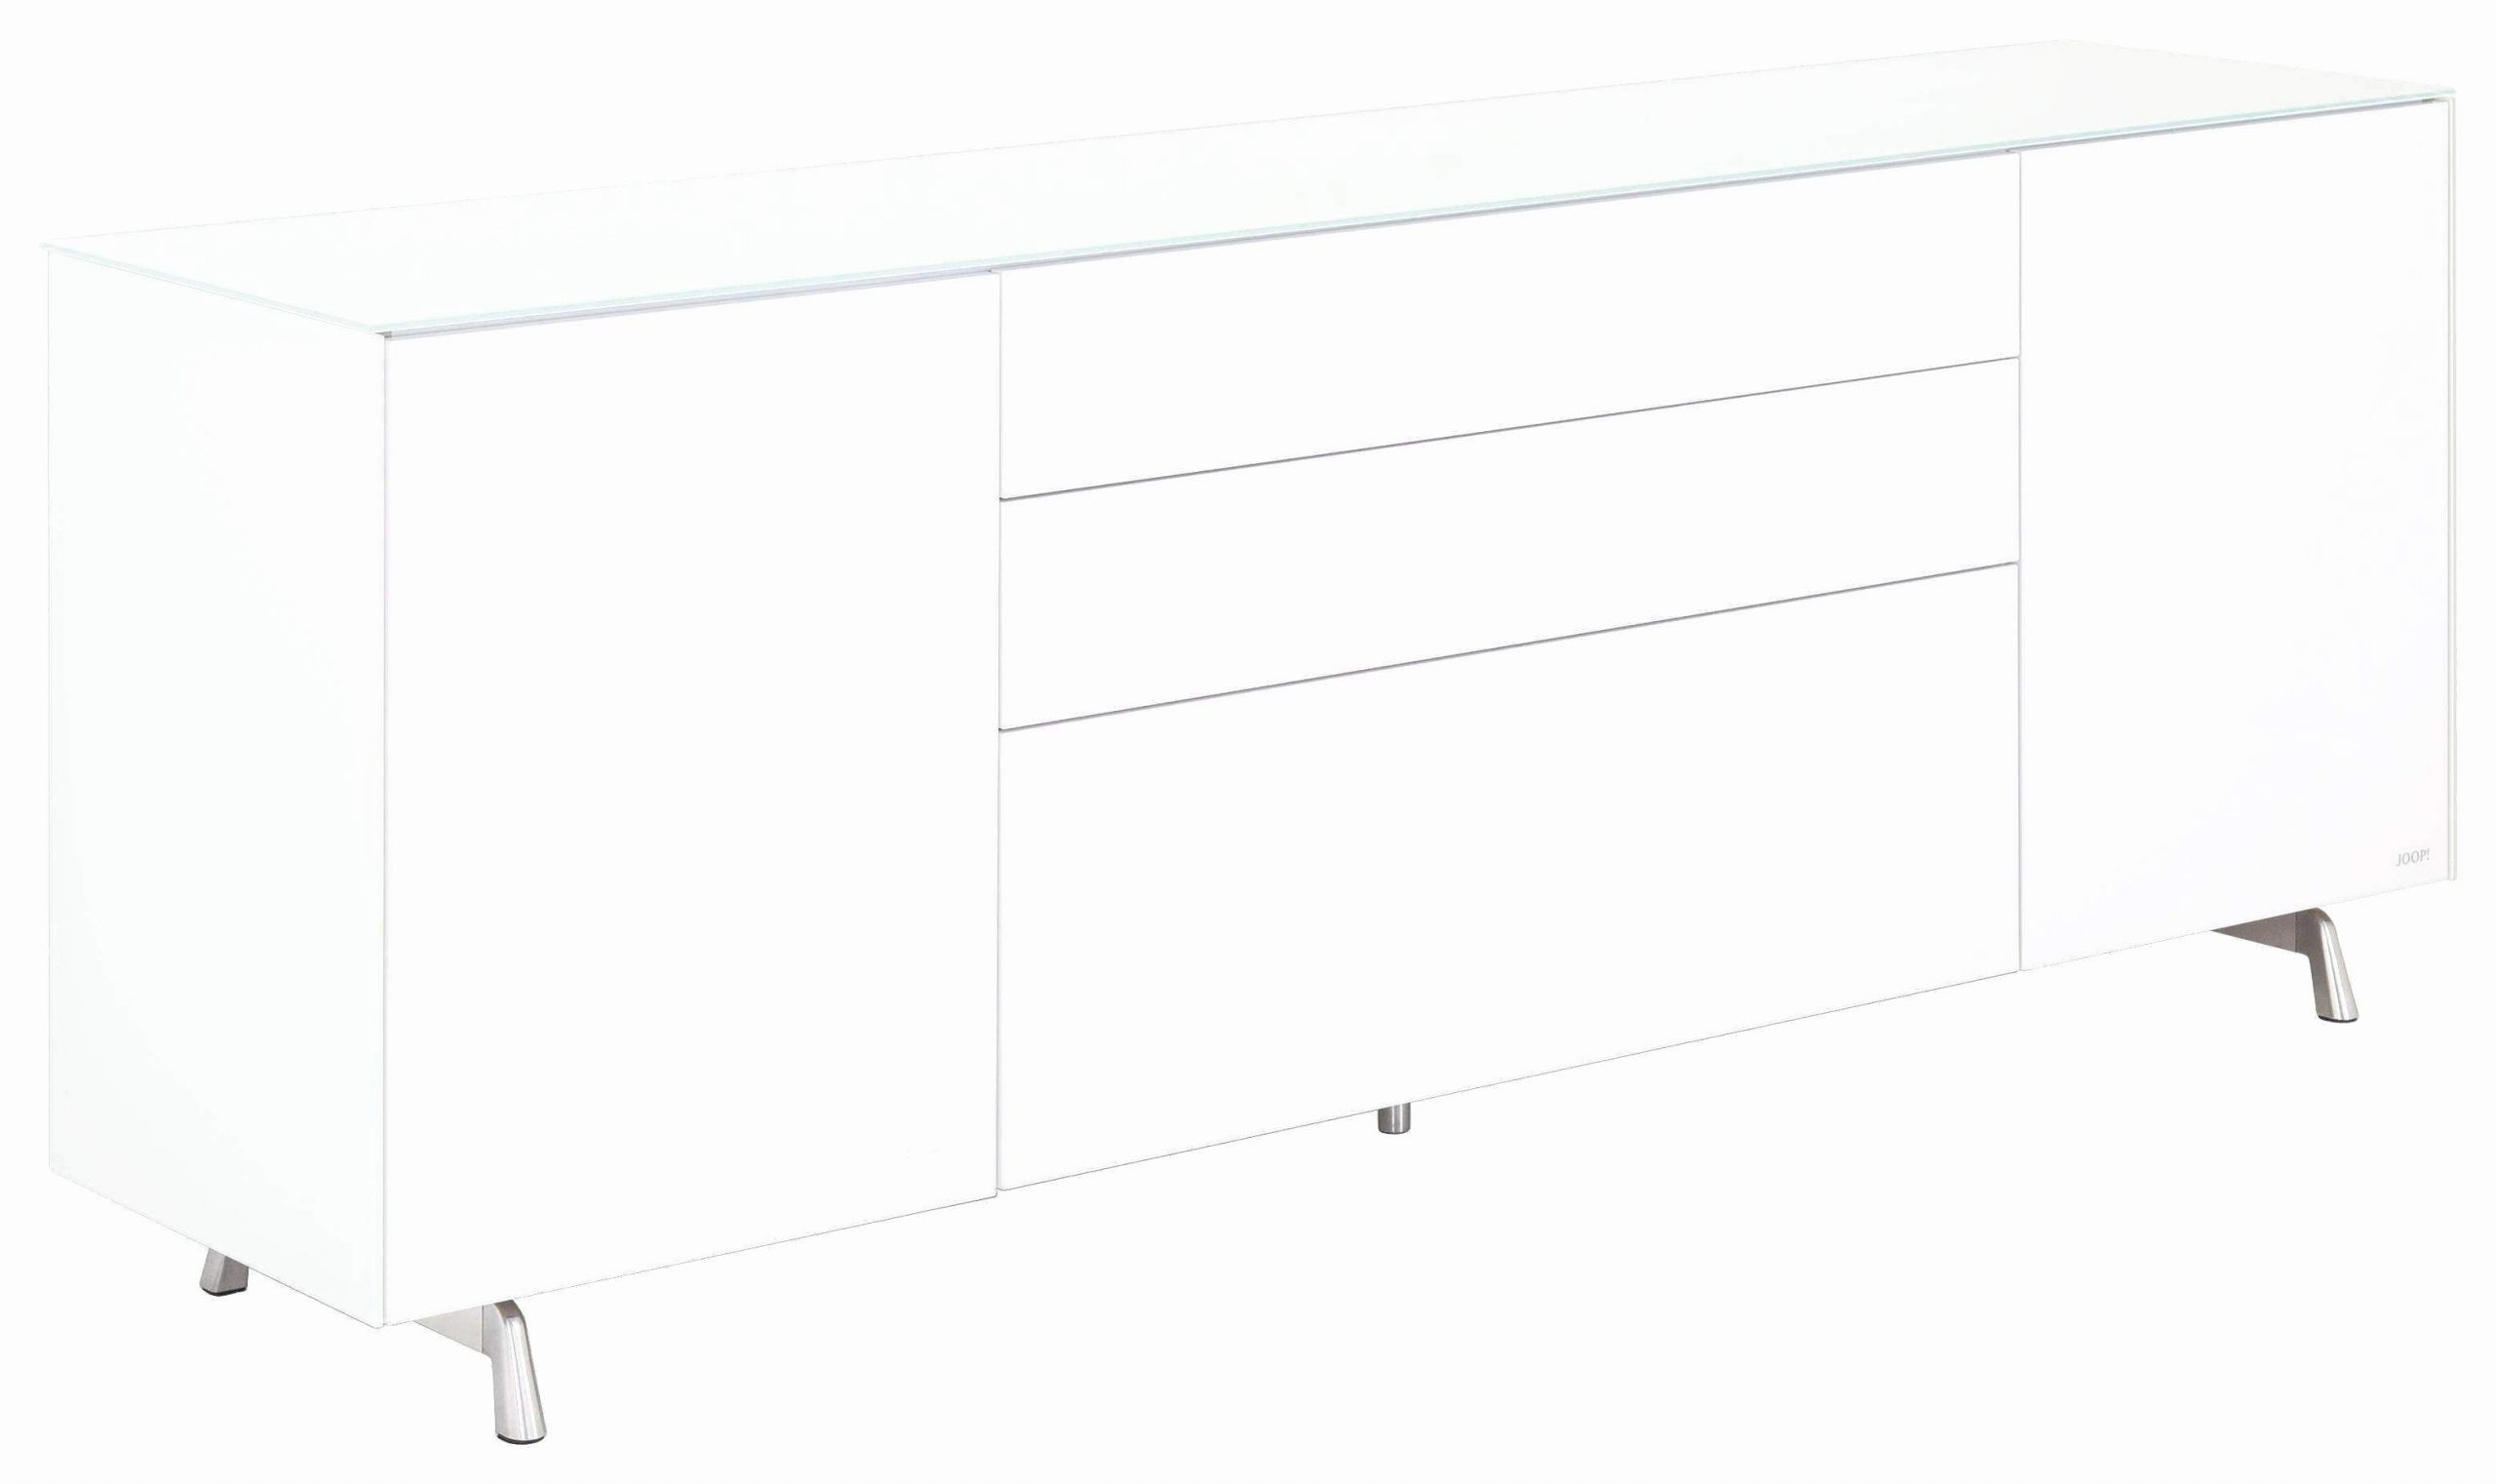 wohnzimmer highboard reizend sideboard wildeiche massiv bilder mobel highboard eiche massiv of wohnzimmer highboard